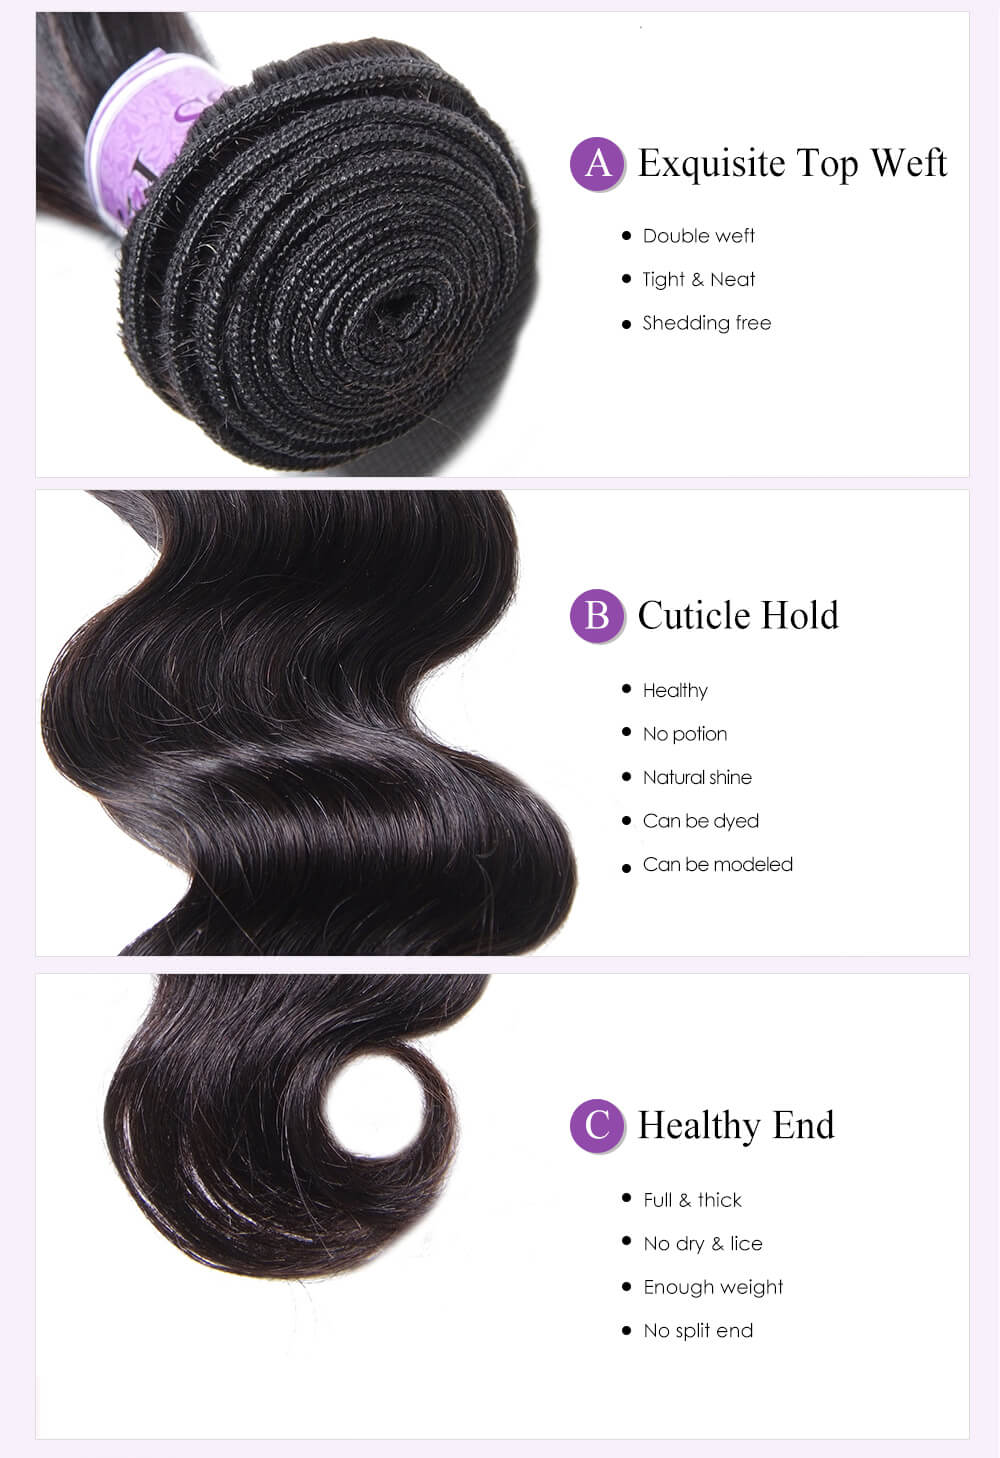 Unice kysiss Peruvian body wave 4 bundles hair